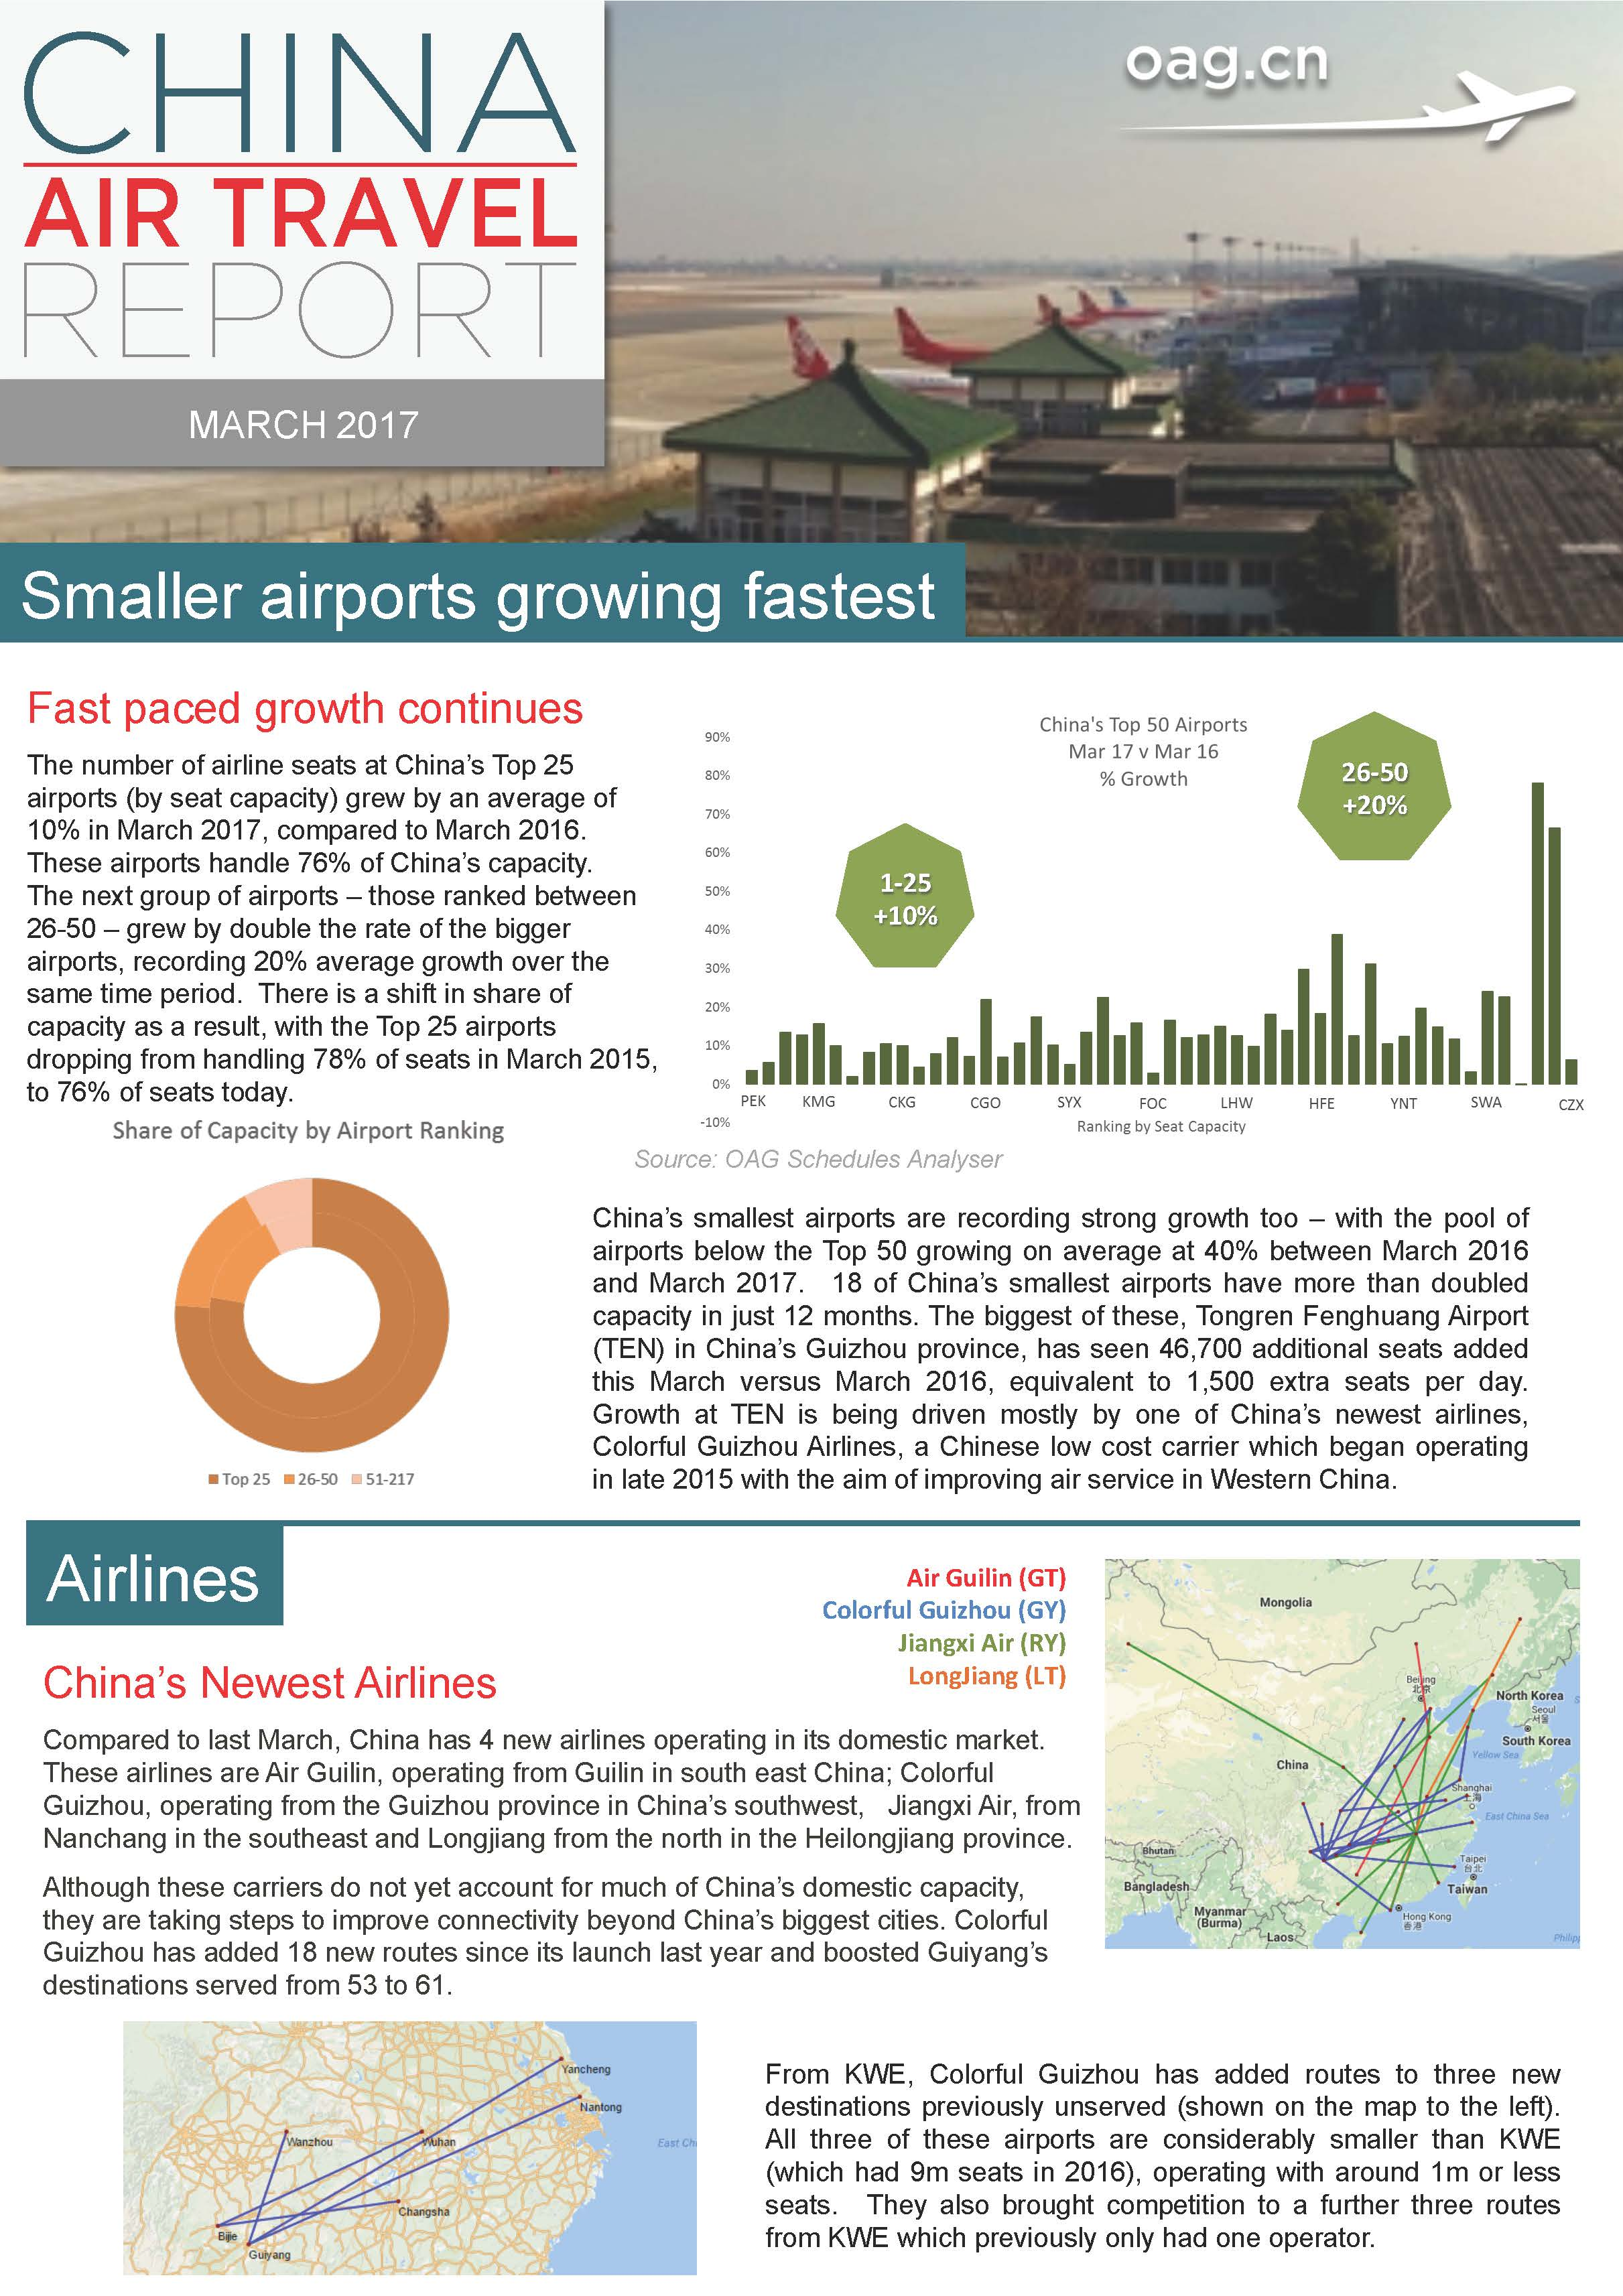 China Air Travel Report - March 2017